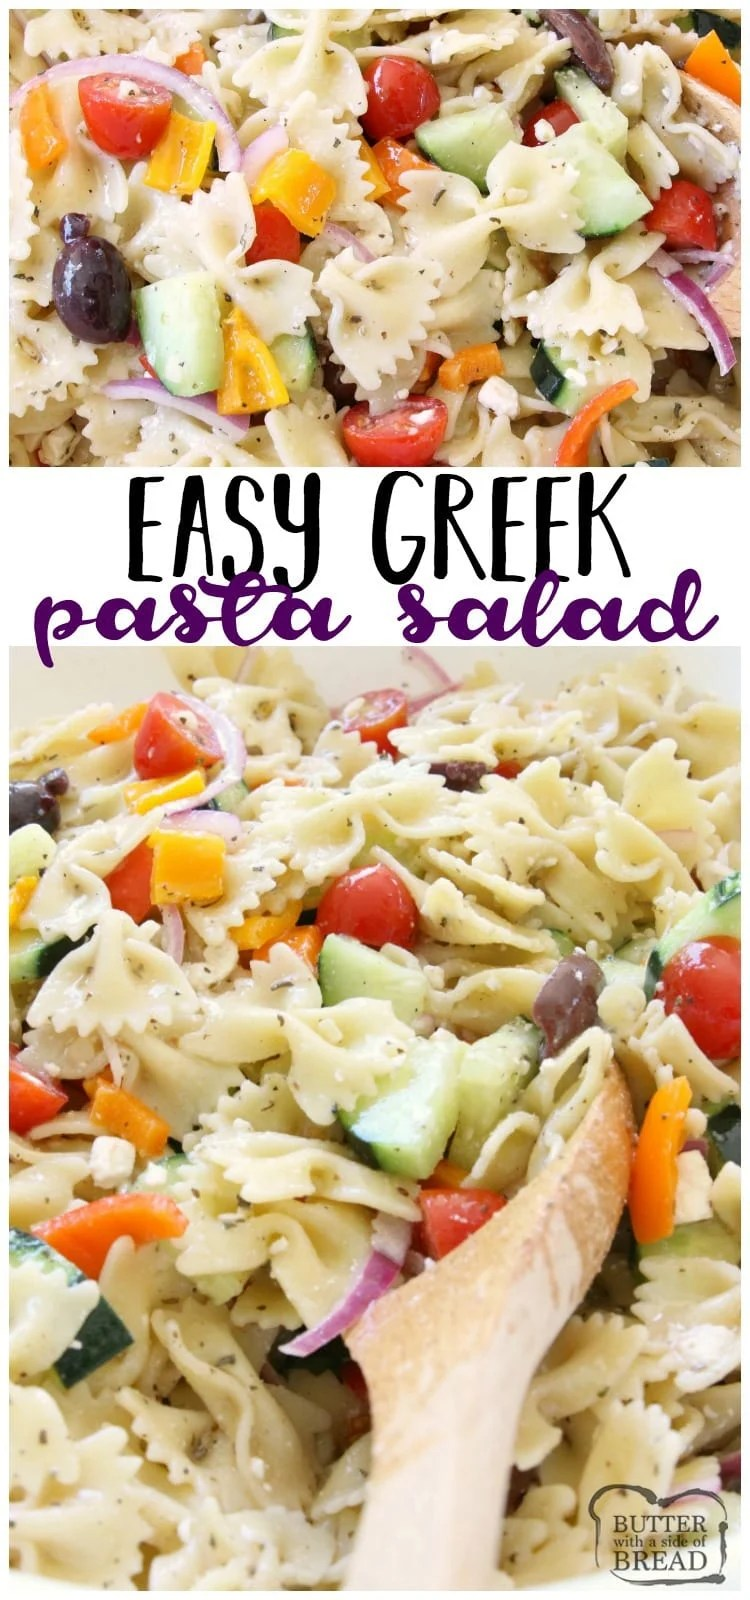 Greek Pasta Salad is fresh, flavorful and simple to put together. Loaded with vegetables and drizzled with a homemade lemon greek vinaigrette, it's easy to make and everyone enjoys it. Perfect topped with crumbled feta cheese and a few additional olives. Easy salad recipe from Butter With A Side of Bread